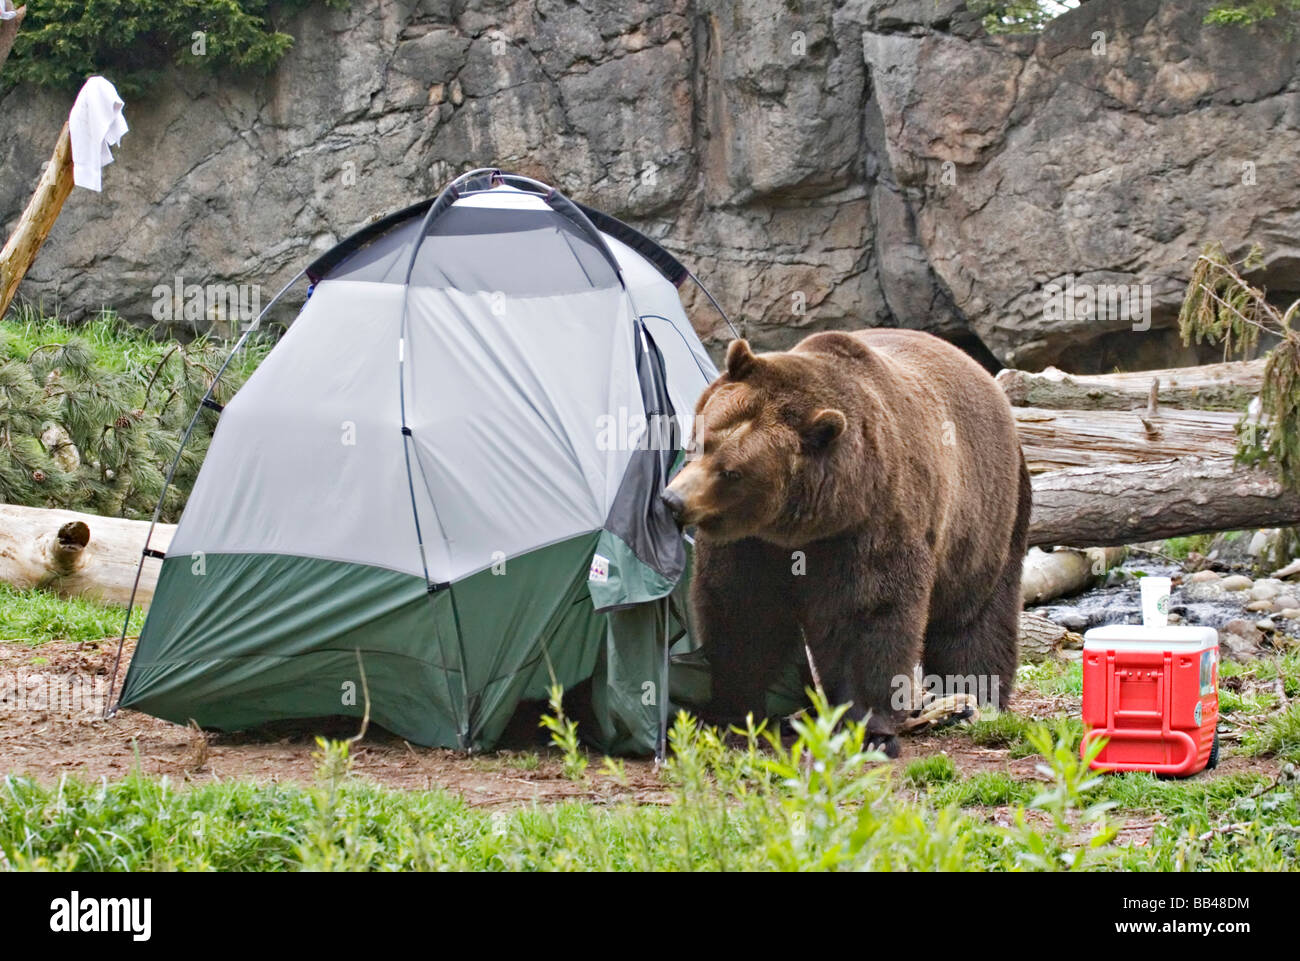 USA Washington Seattle Woodland Park Zoo. A Brown bear breaking into a tent at a c&site : usa tent - memphite.com